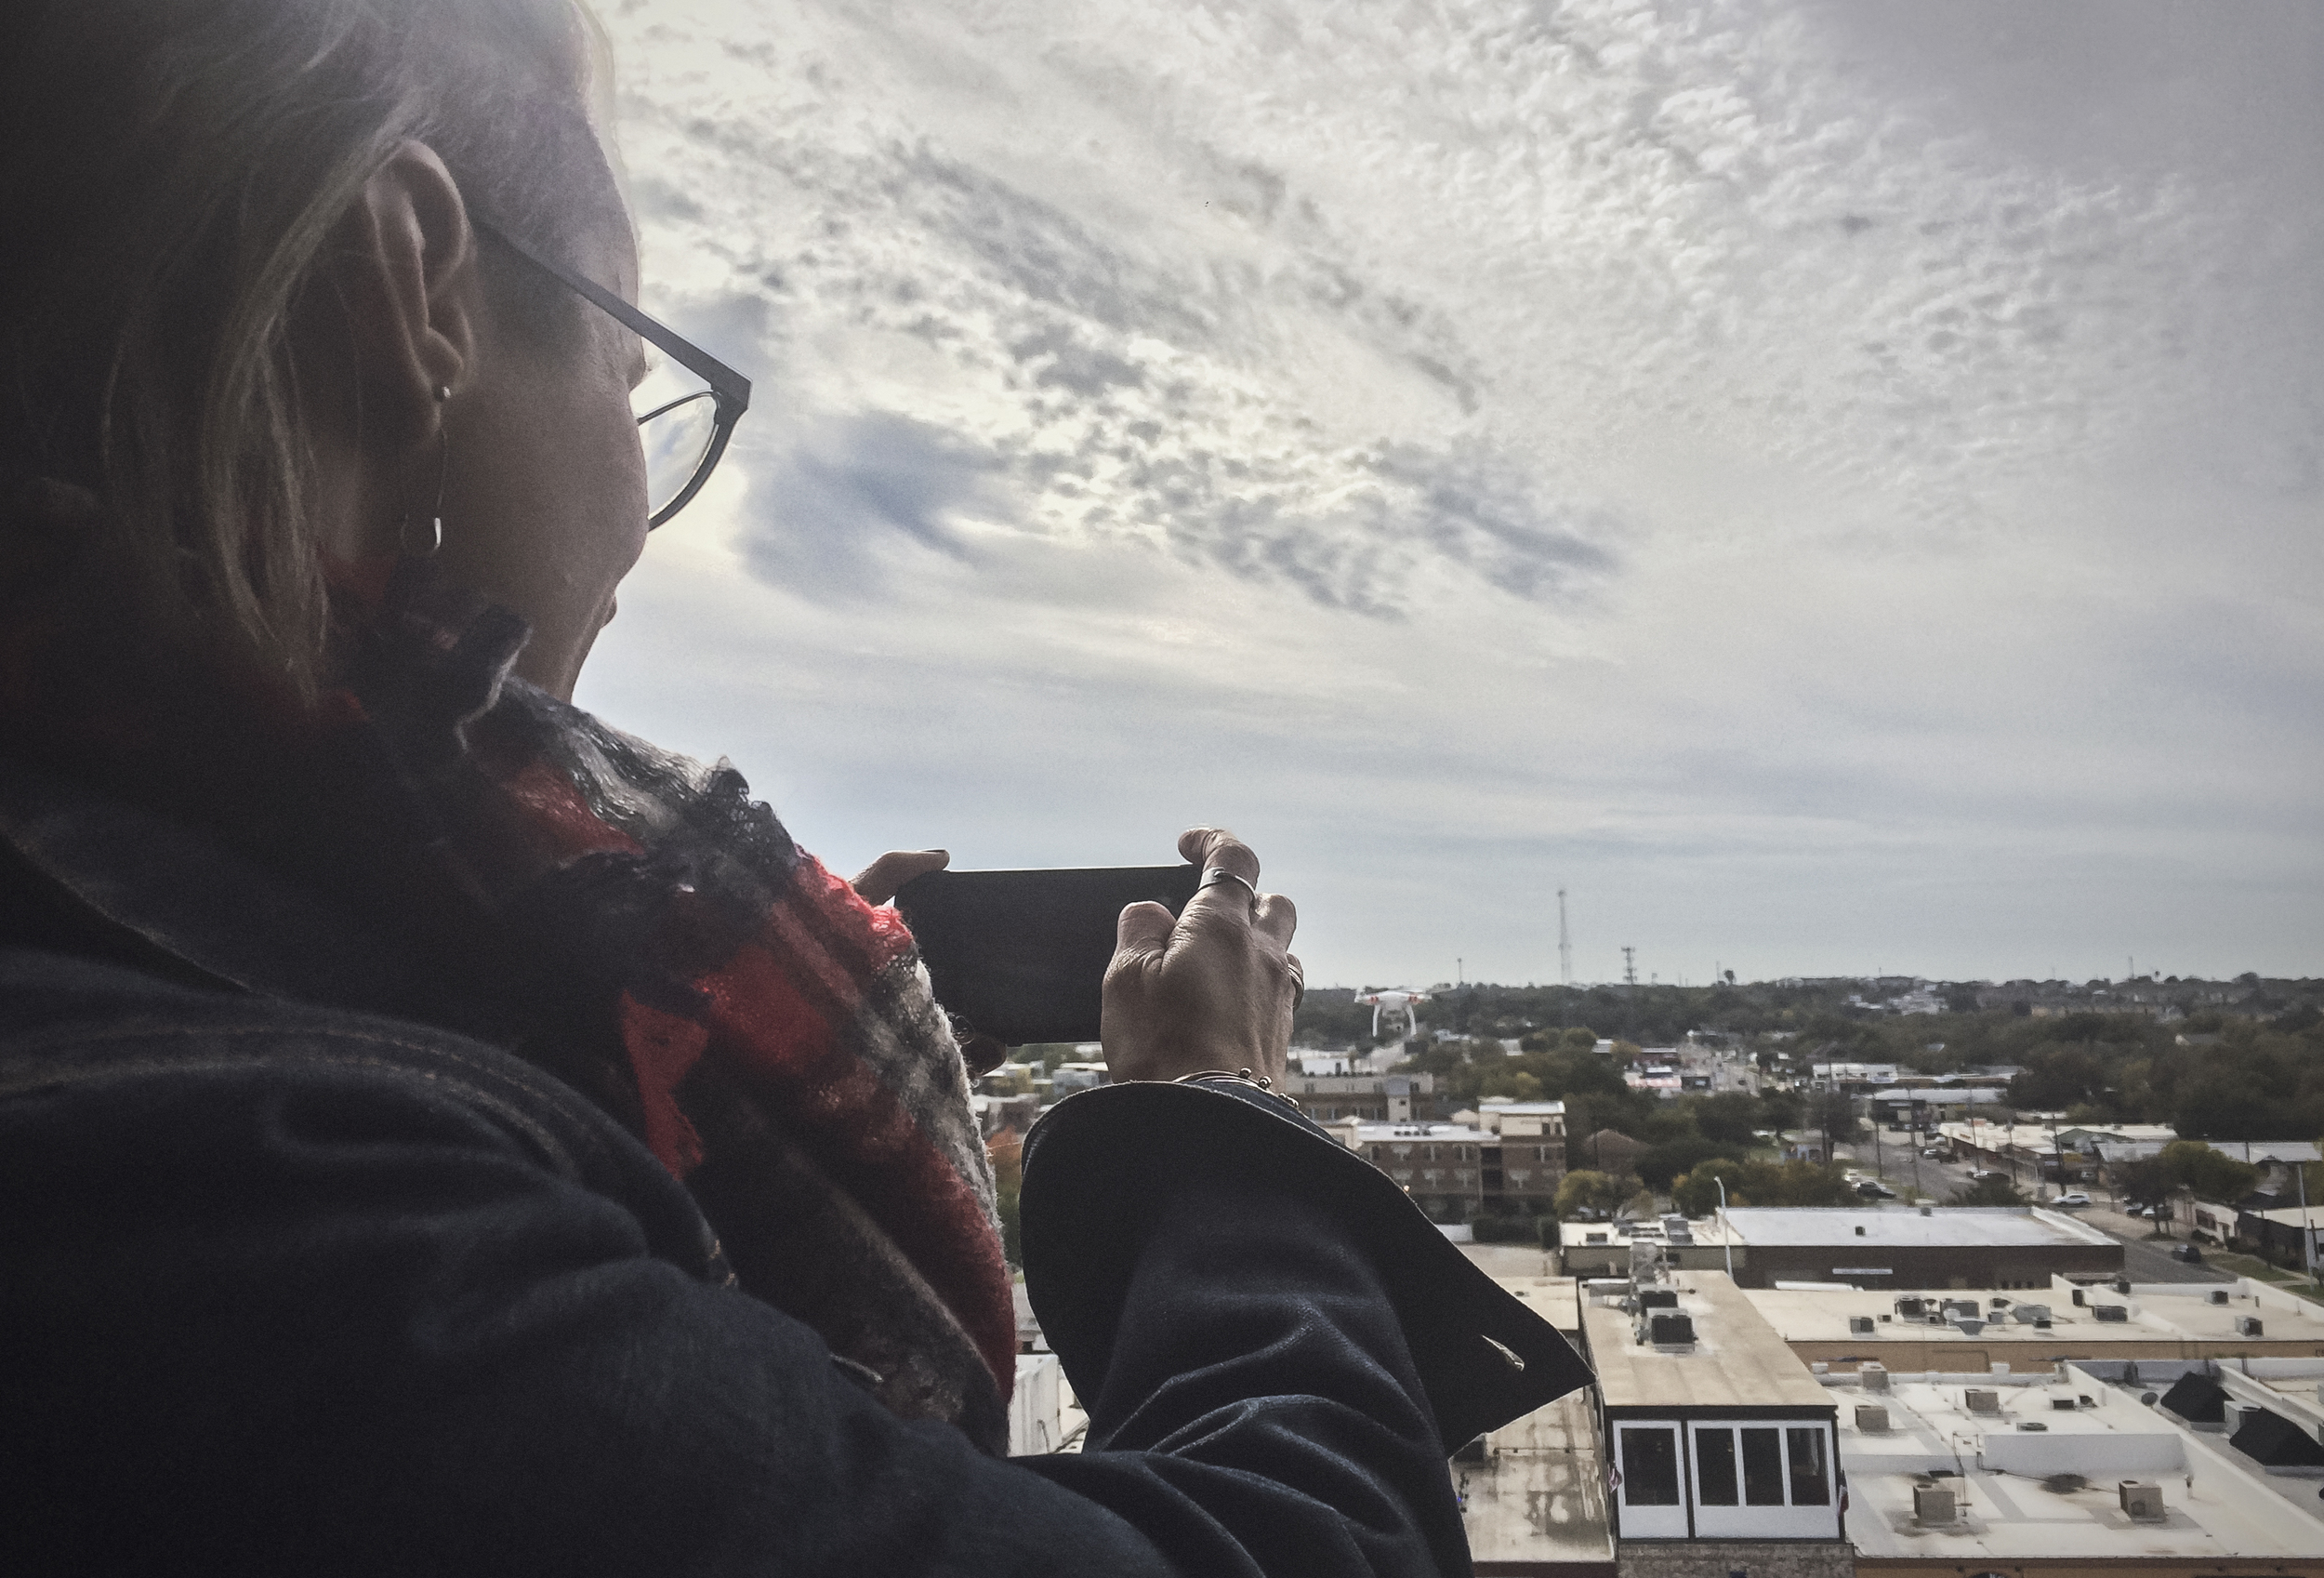 @kkbigley snapping some photos from the top of the courthouse.